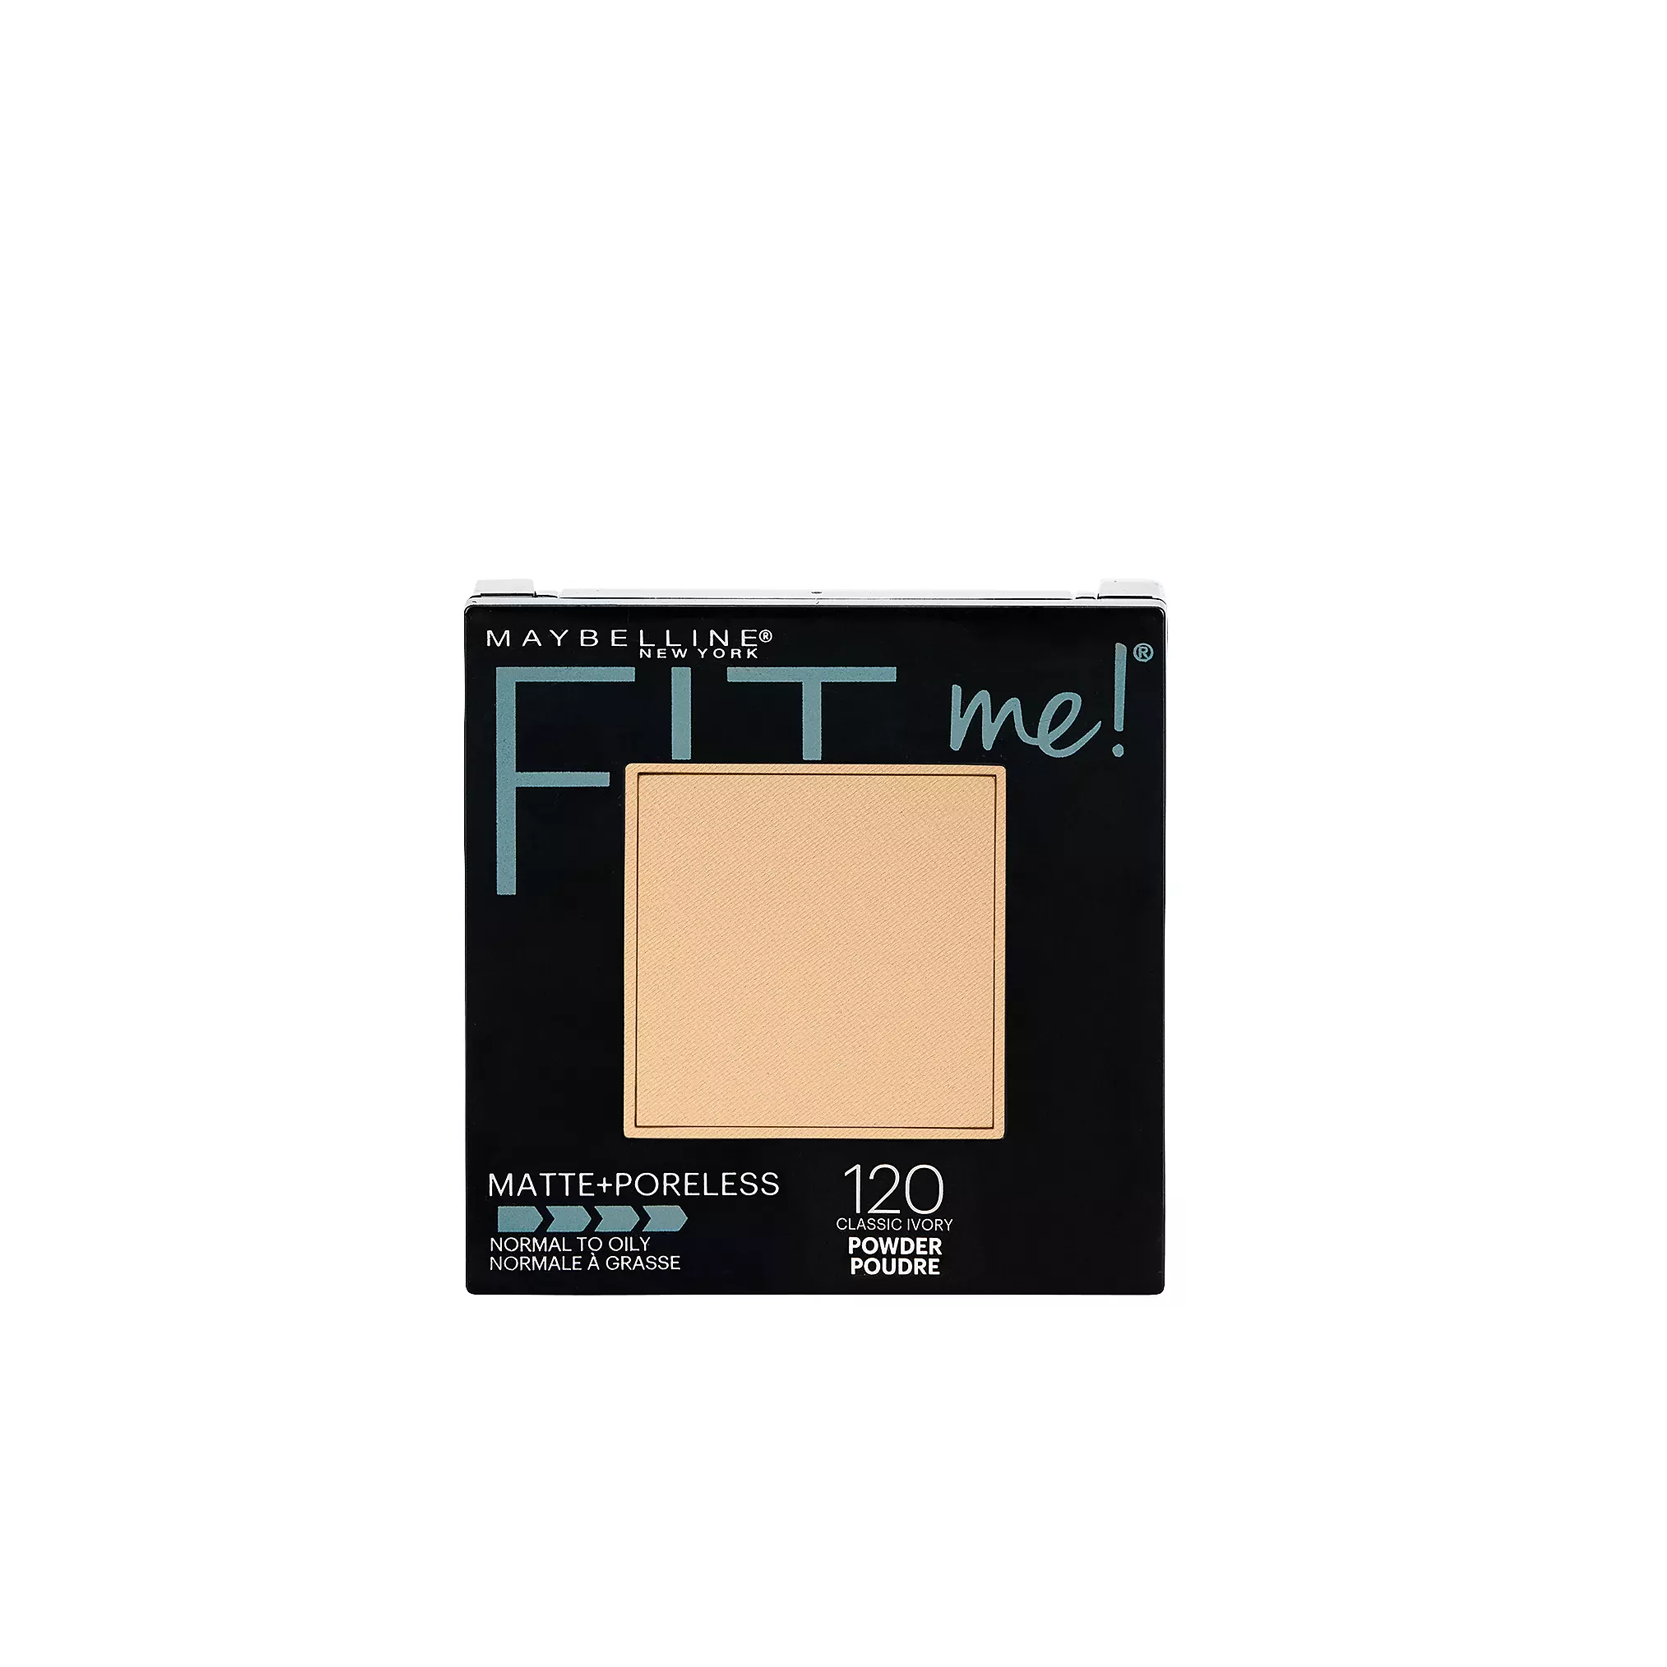 PHẤN PHỦ MAYBELLINE FIT ME MATTE+PORELESS POWDER